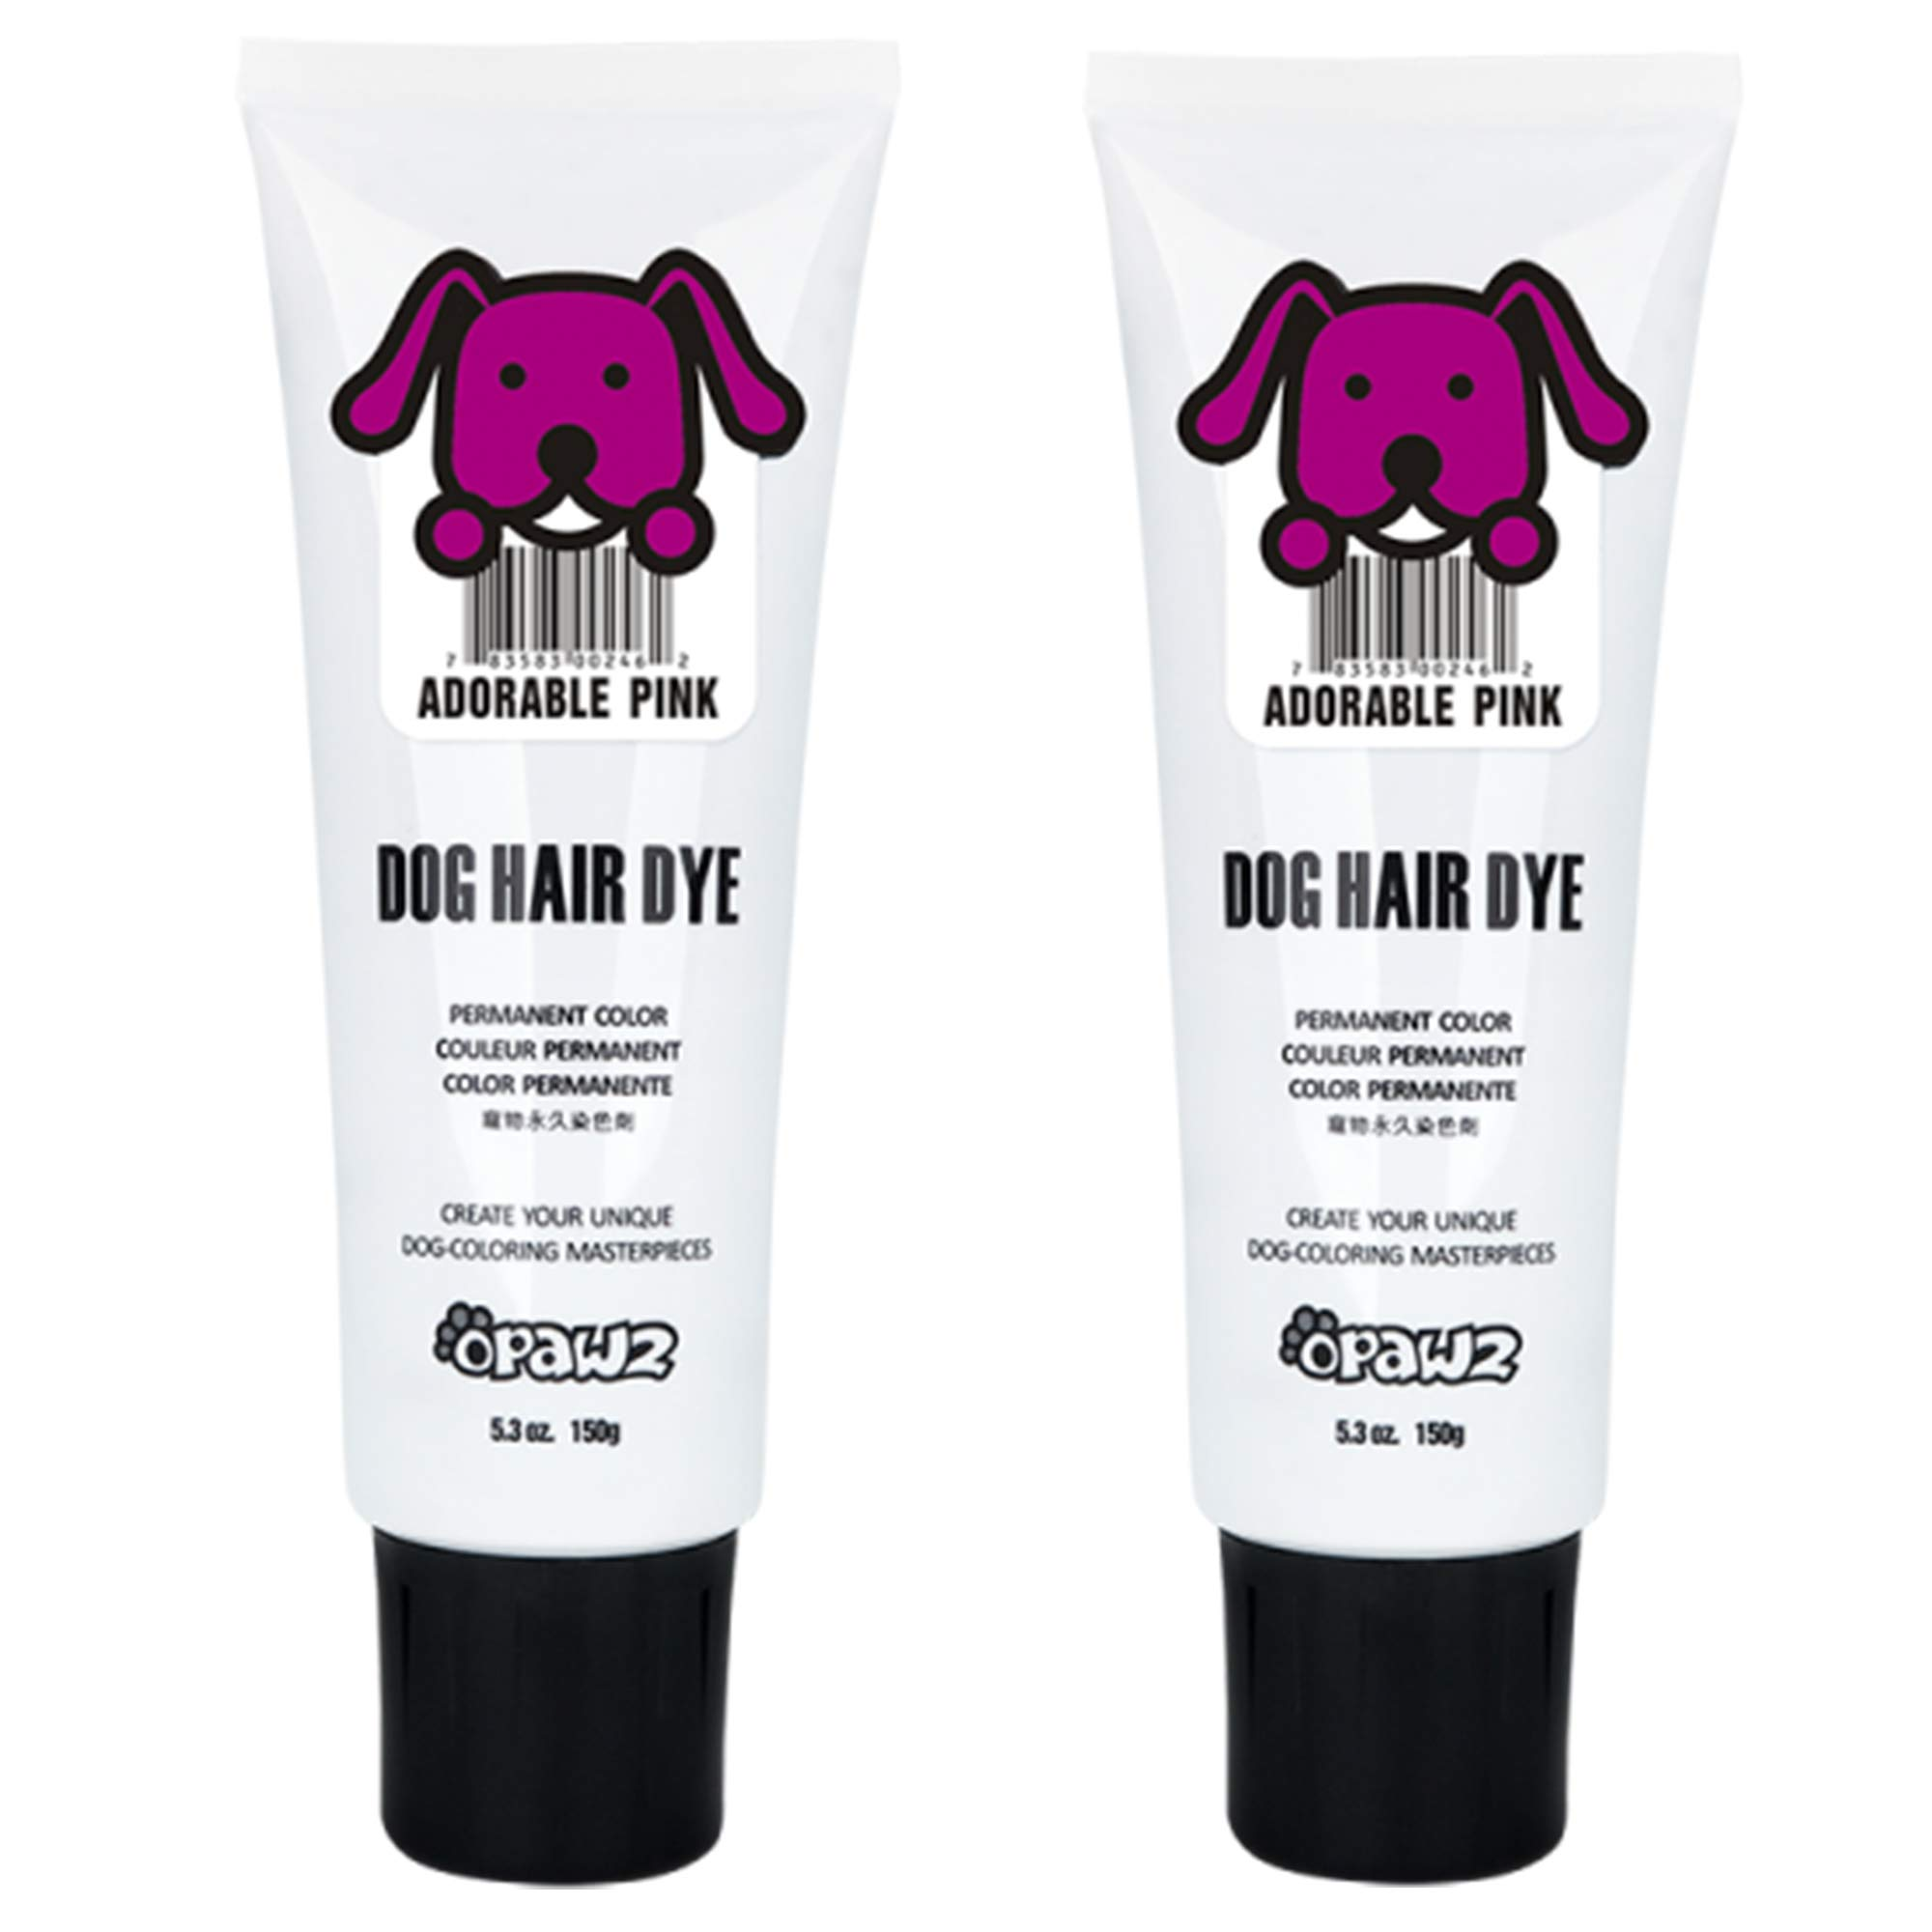 Owpawz Dog Hair DYE Gel - New Bright, Fun Shade, Semi-Permanent, Completely Non-Toxic and Safe (Pink - 2 PK) by Owpawz